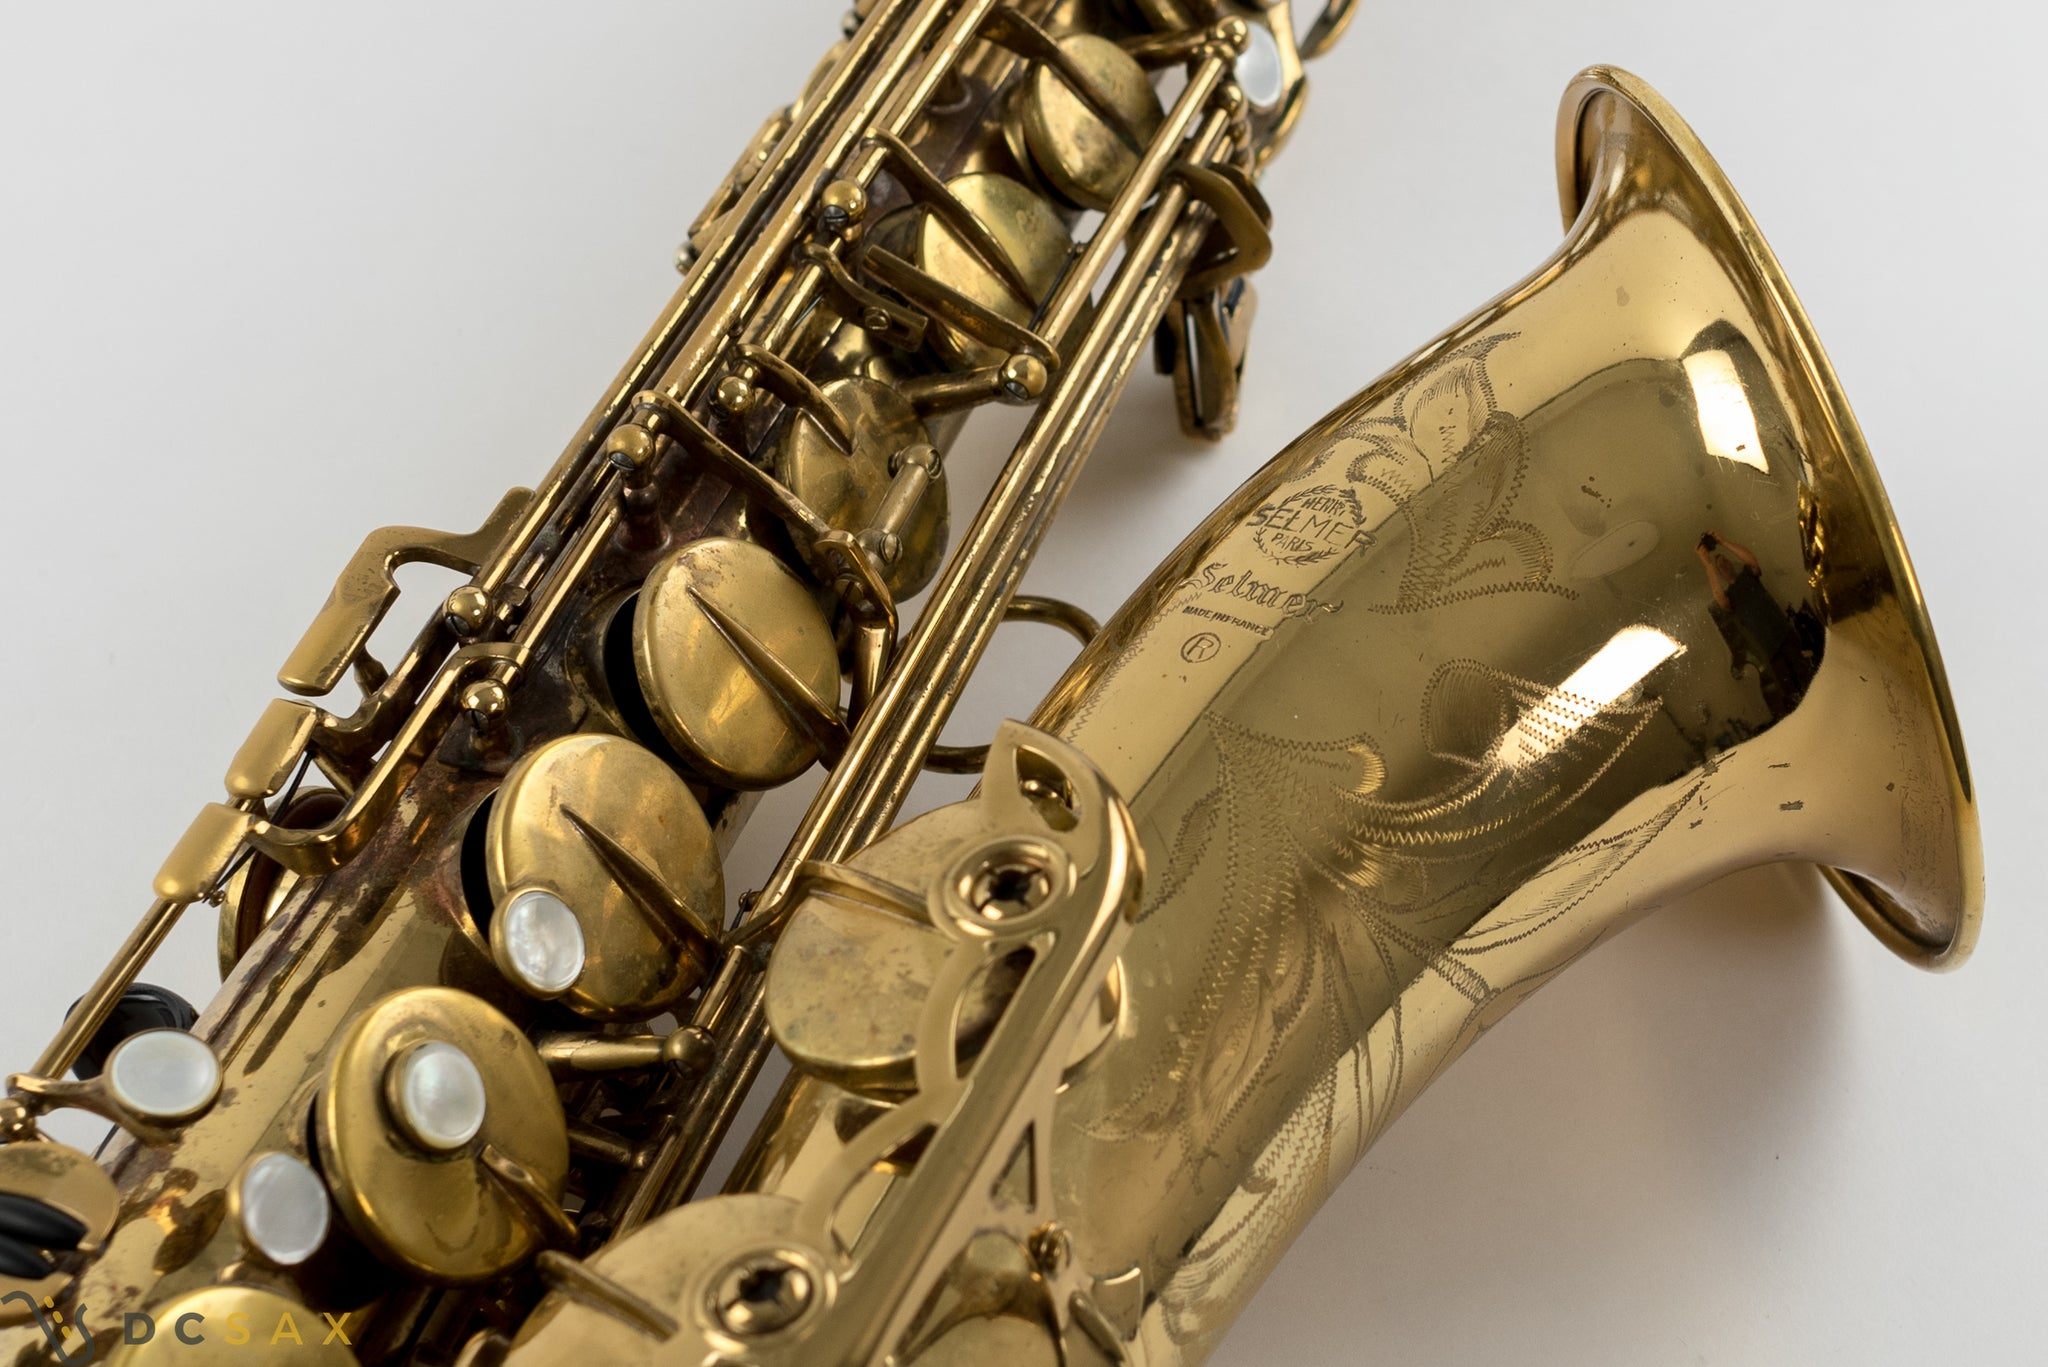 191,xxx Selmer Mark VI Tenor Saxophone, 96% Original Lacquer, Just Serviced